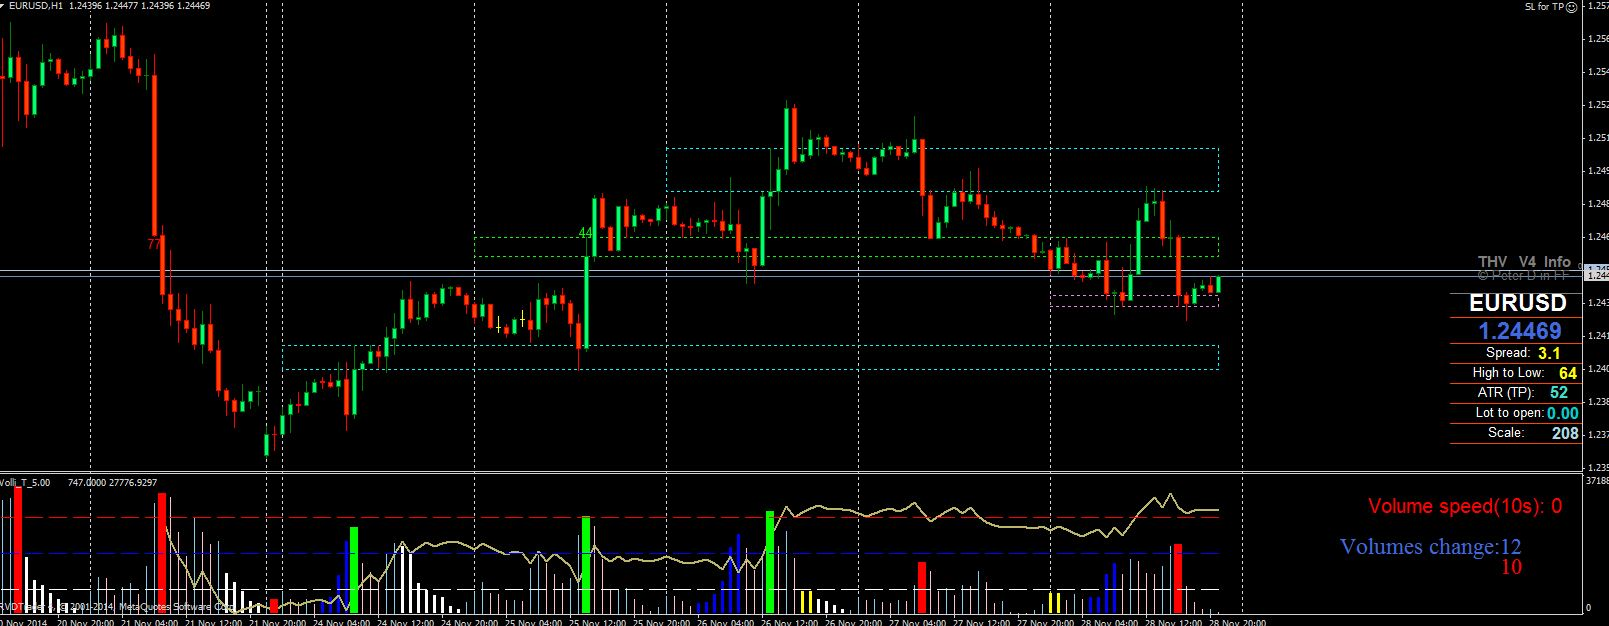 Buy and Sell Volume Signals Indicator